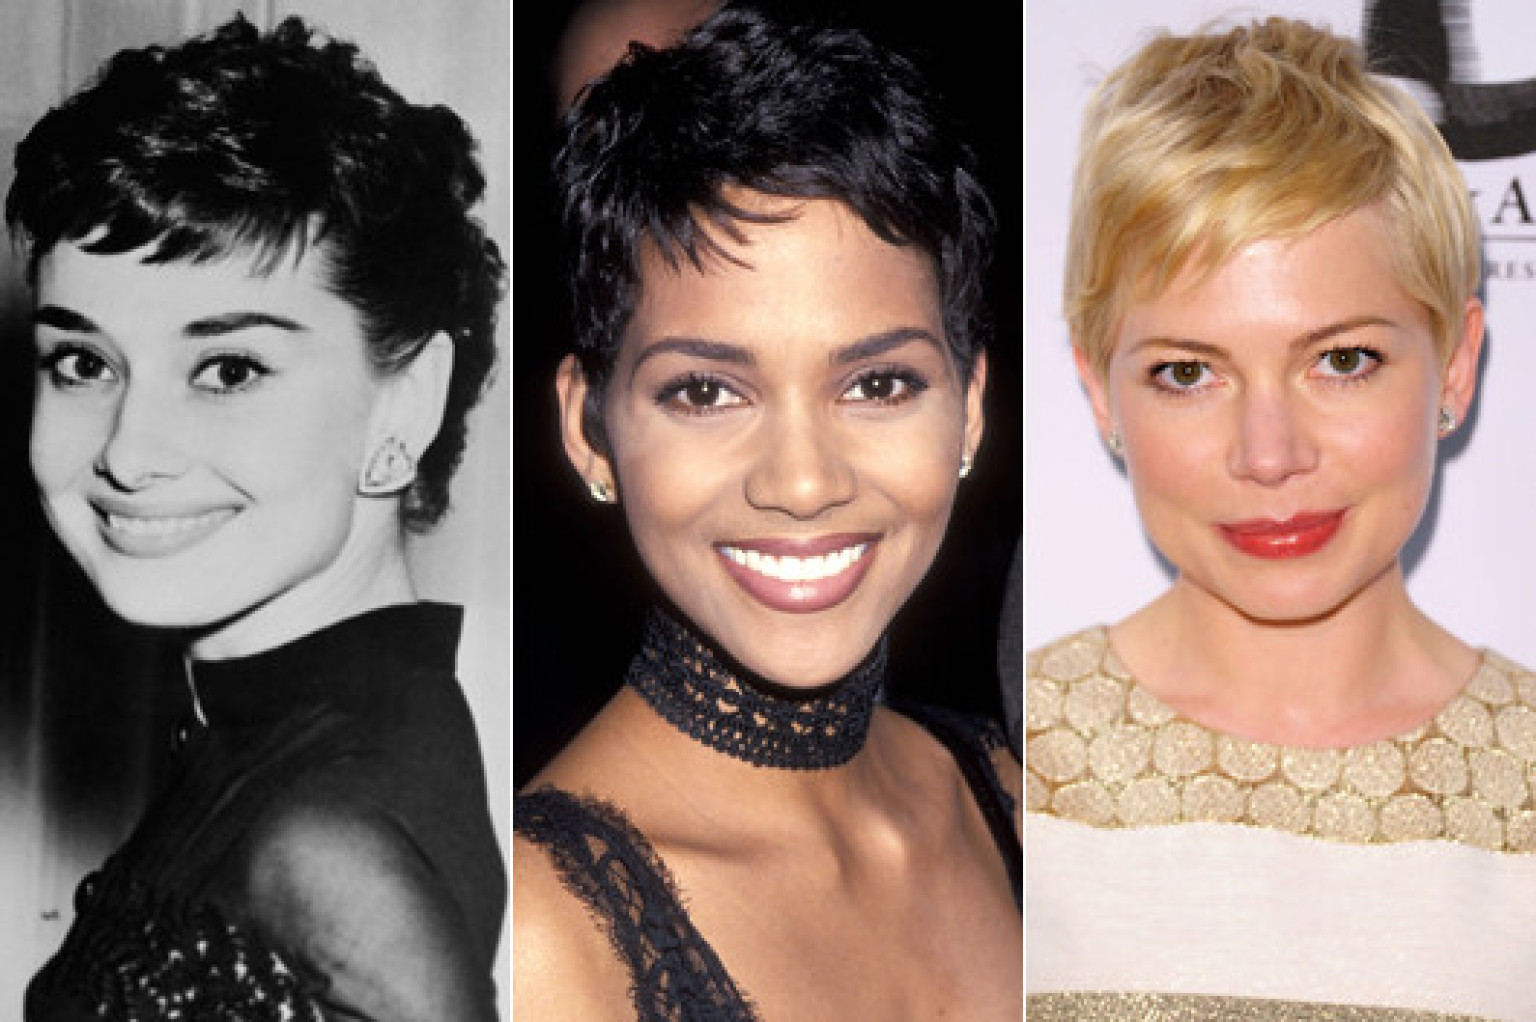 Boy crop hairstyles we love from audrey to mia to halle photos boy crop hairstyles we love from audrey to mia to halle photos huffpost urmus Image collections